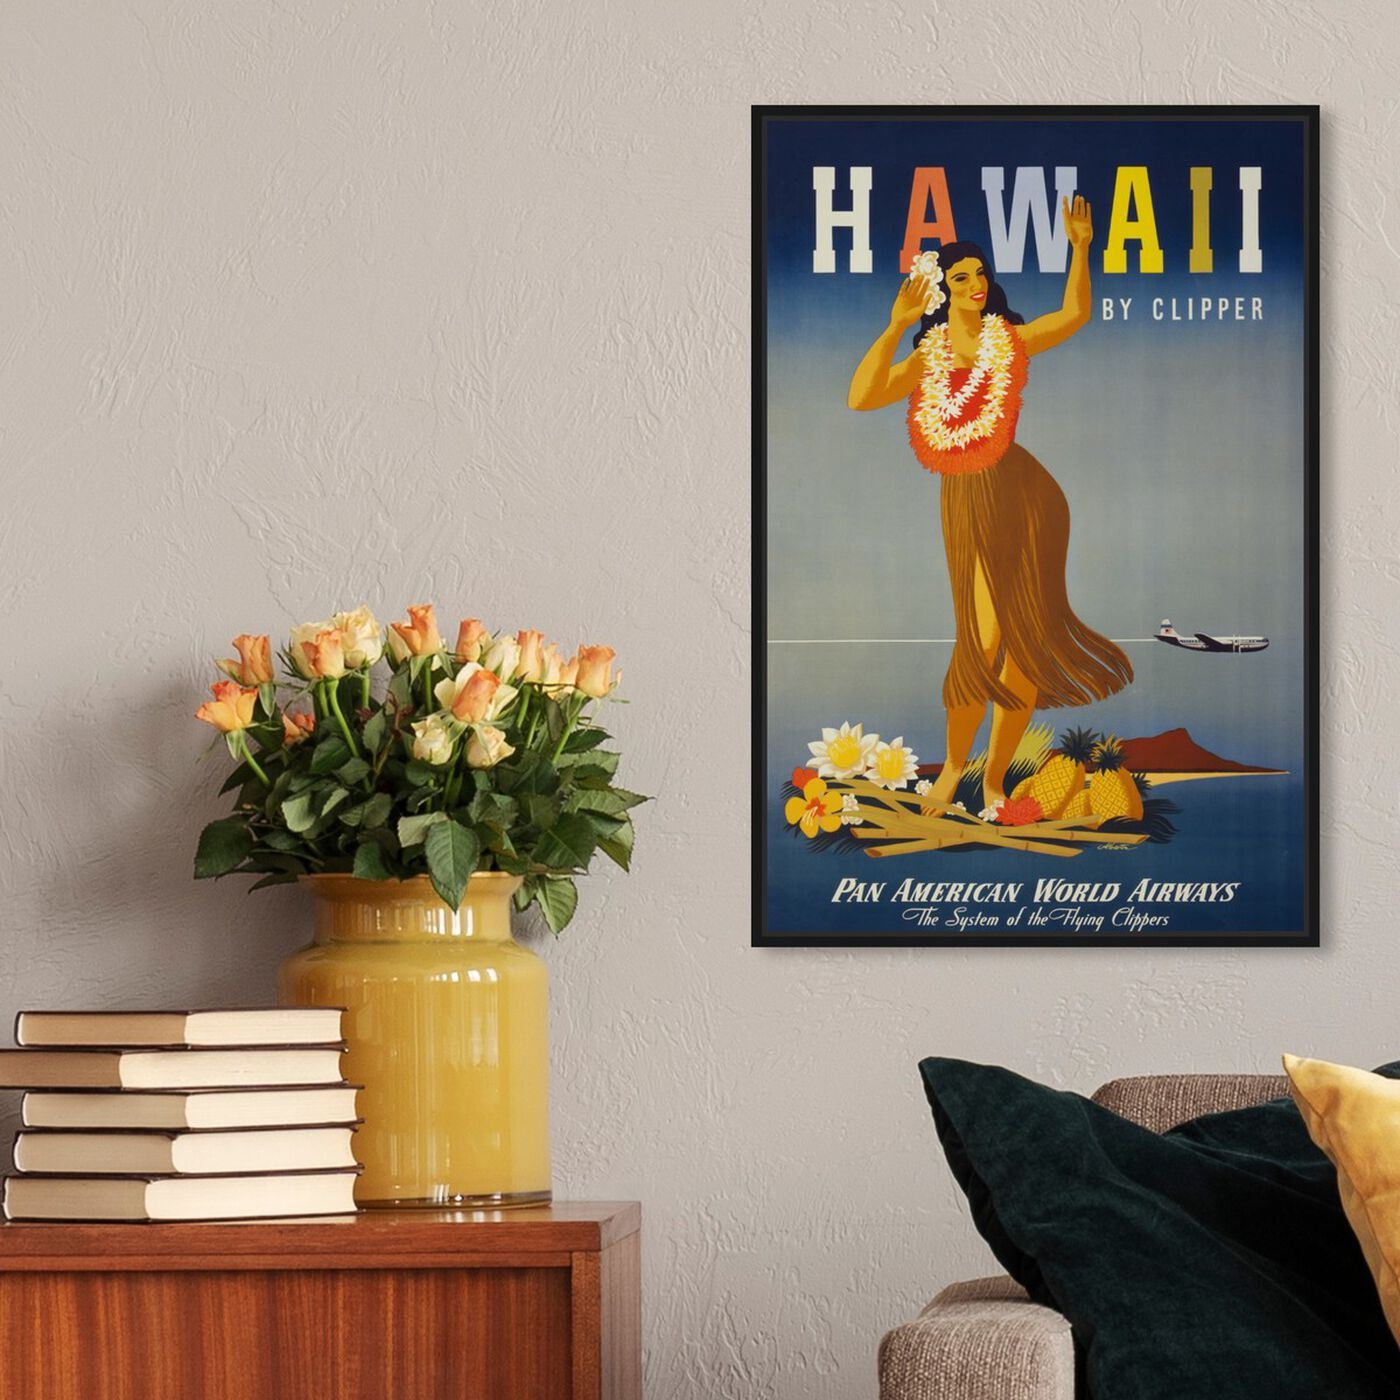 Hanging view of Hawaii featuring cities and skylines and united states cities art.